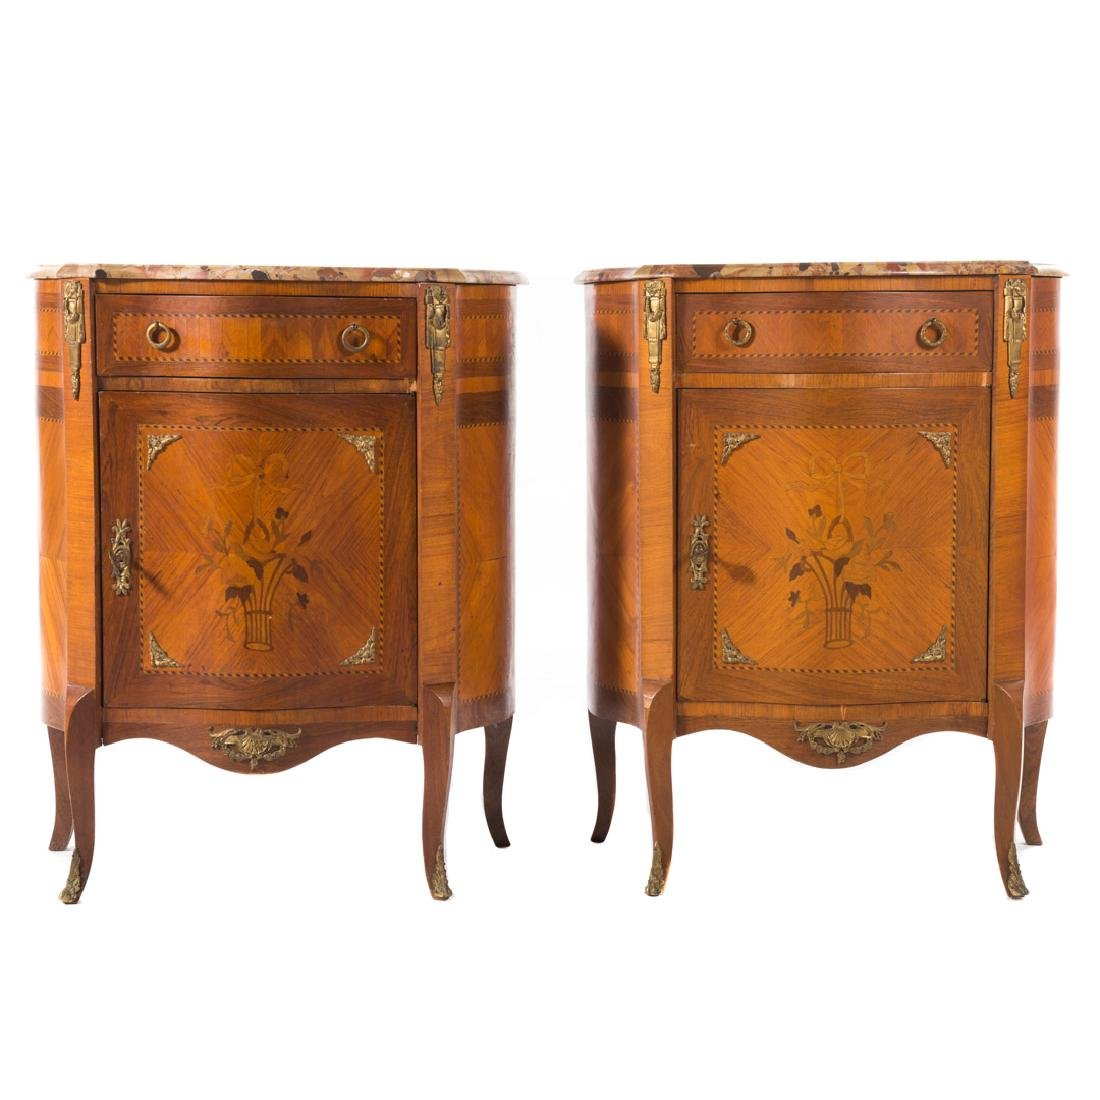 Pair Louis XV style inlaid marble top commodes,